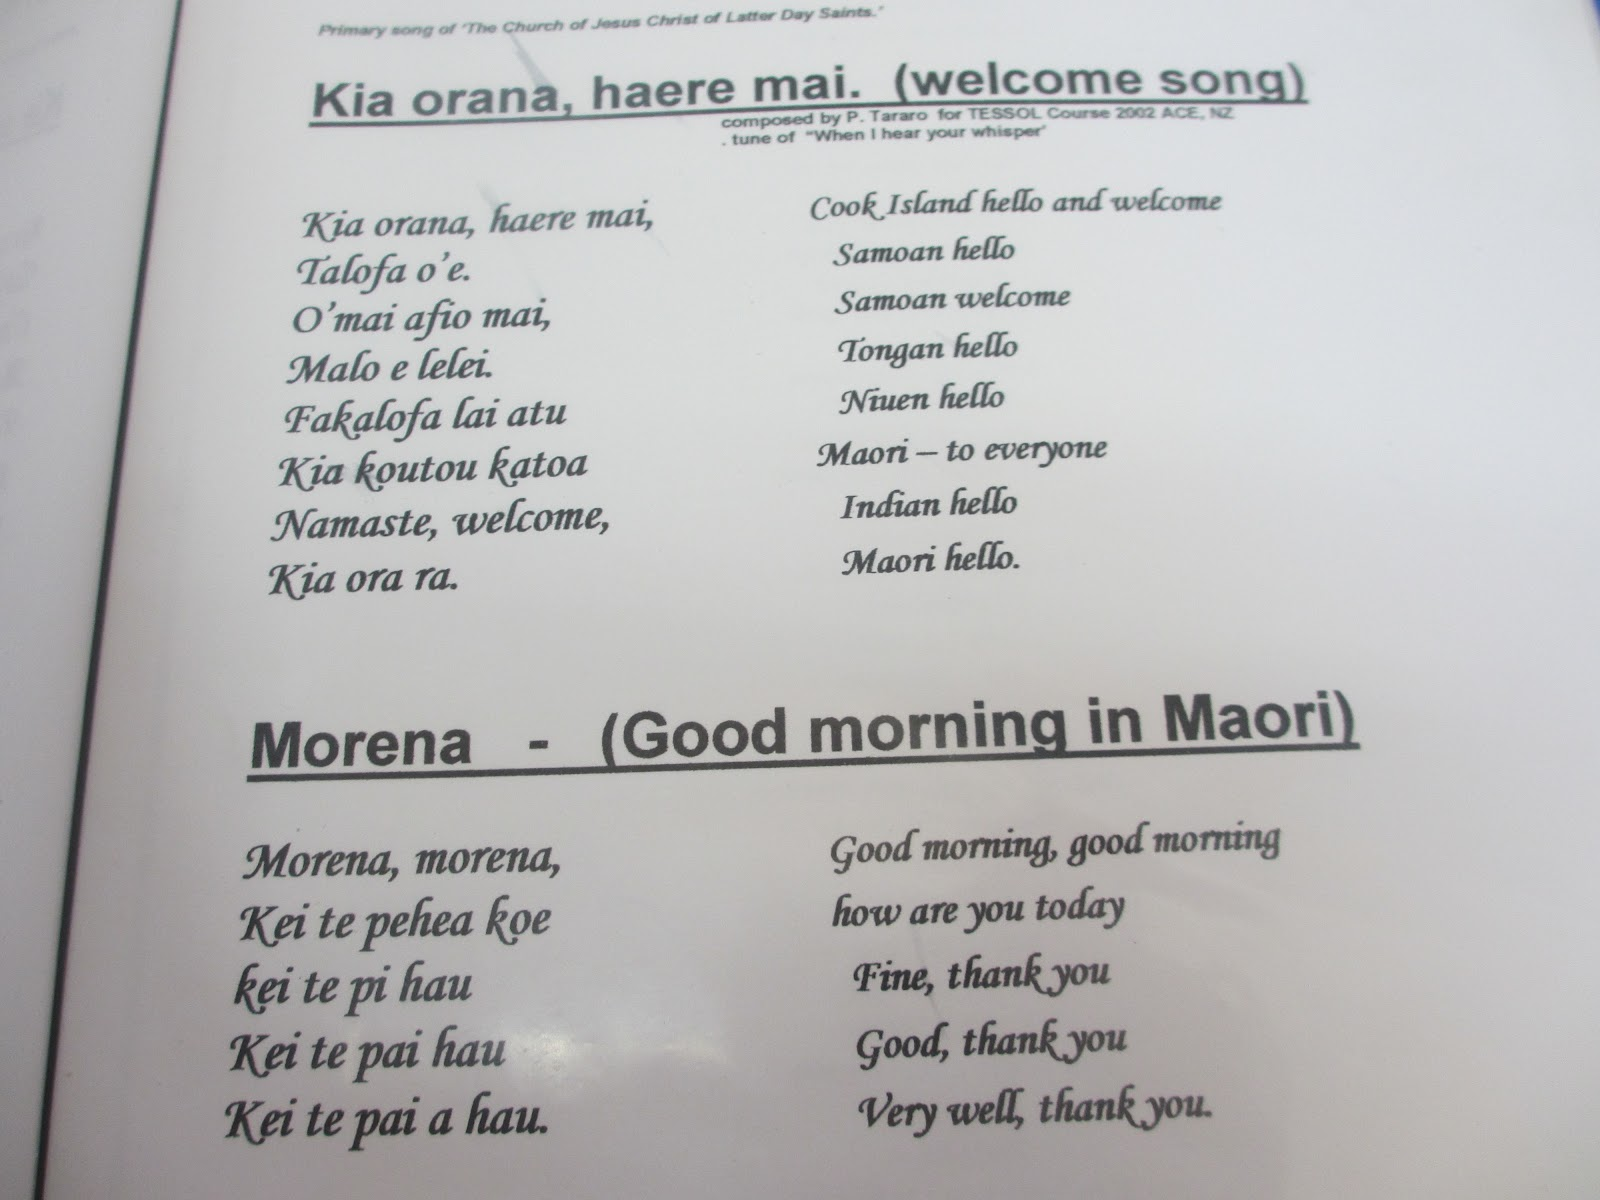 Kia ora culture culture culture here are the greetings for the different cultures in my class that my teacher would call out each morning m4hsunfo